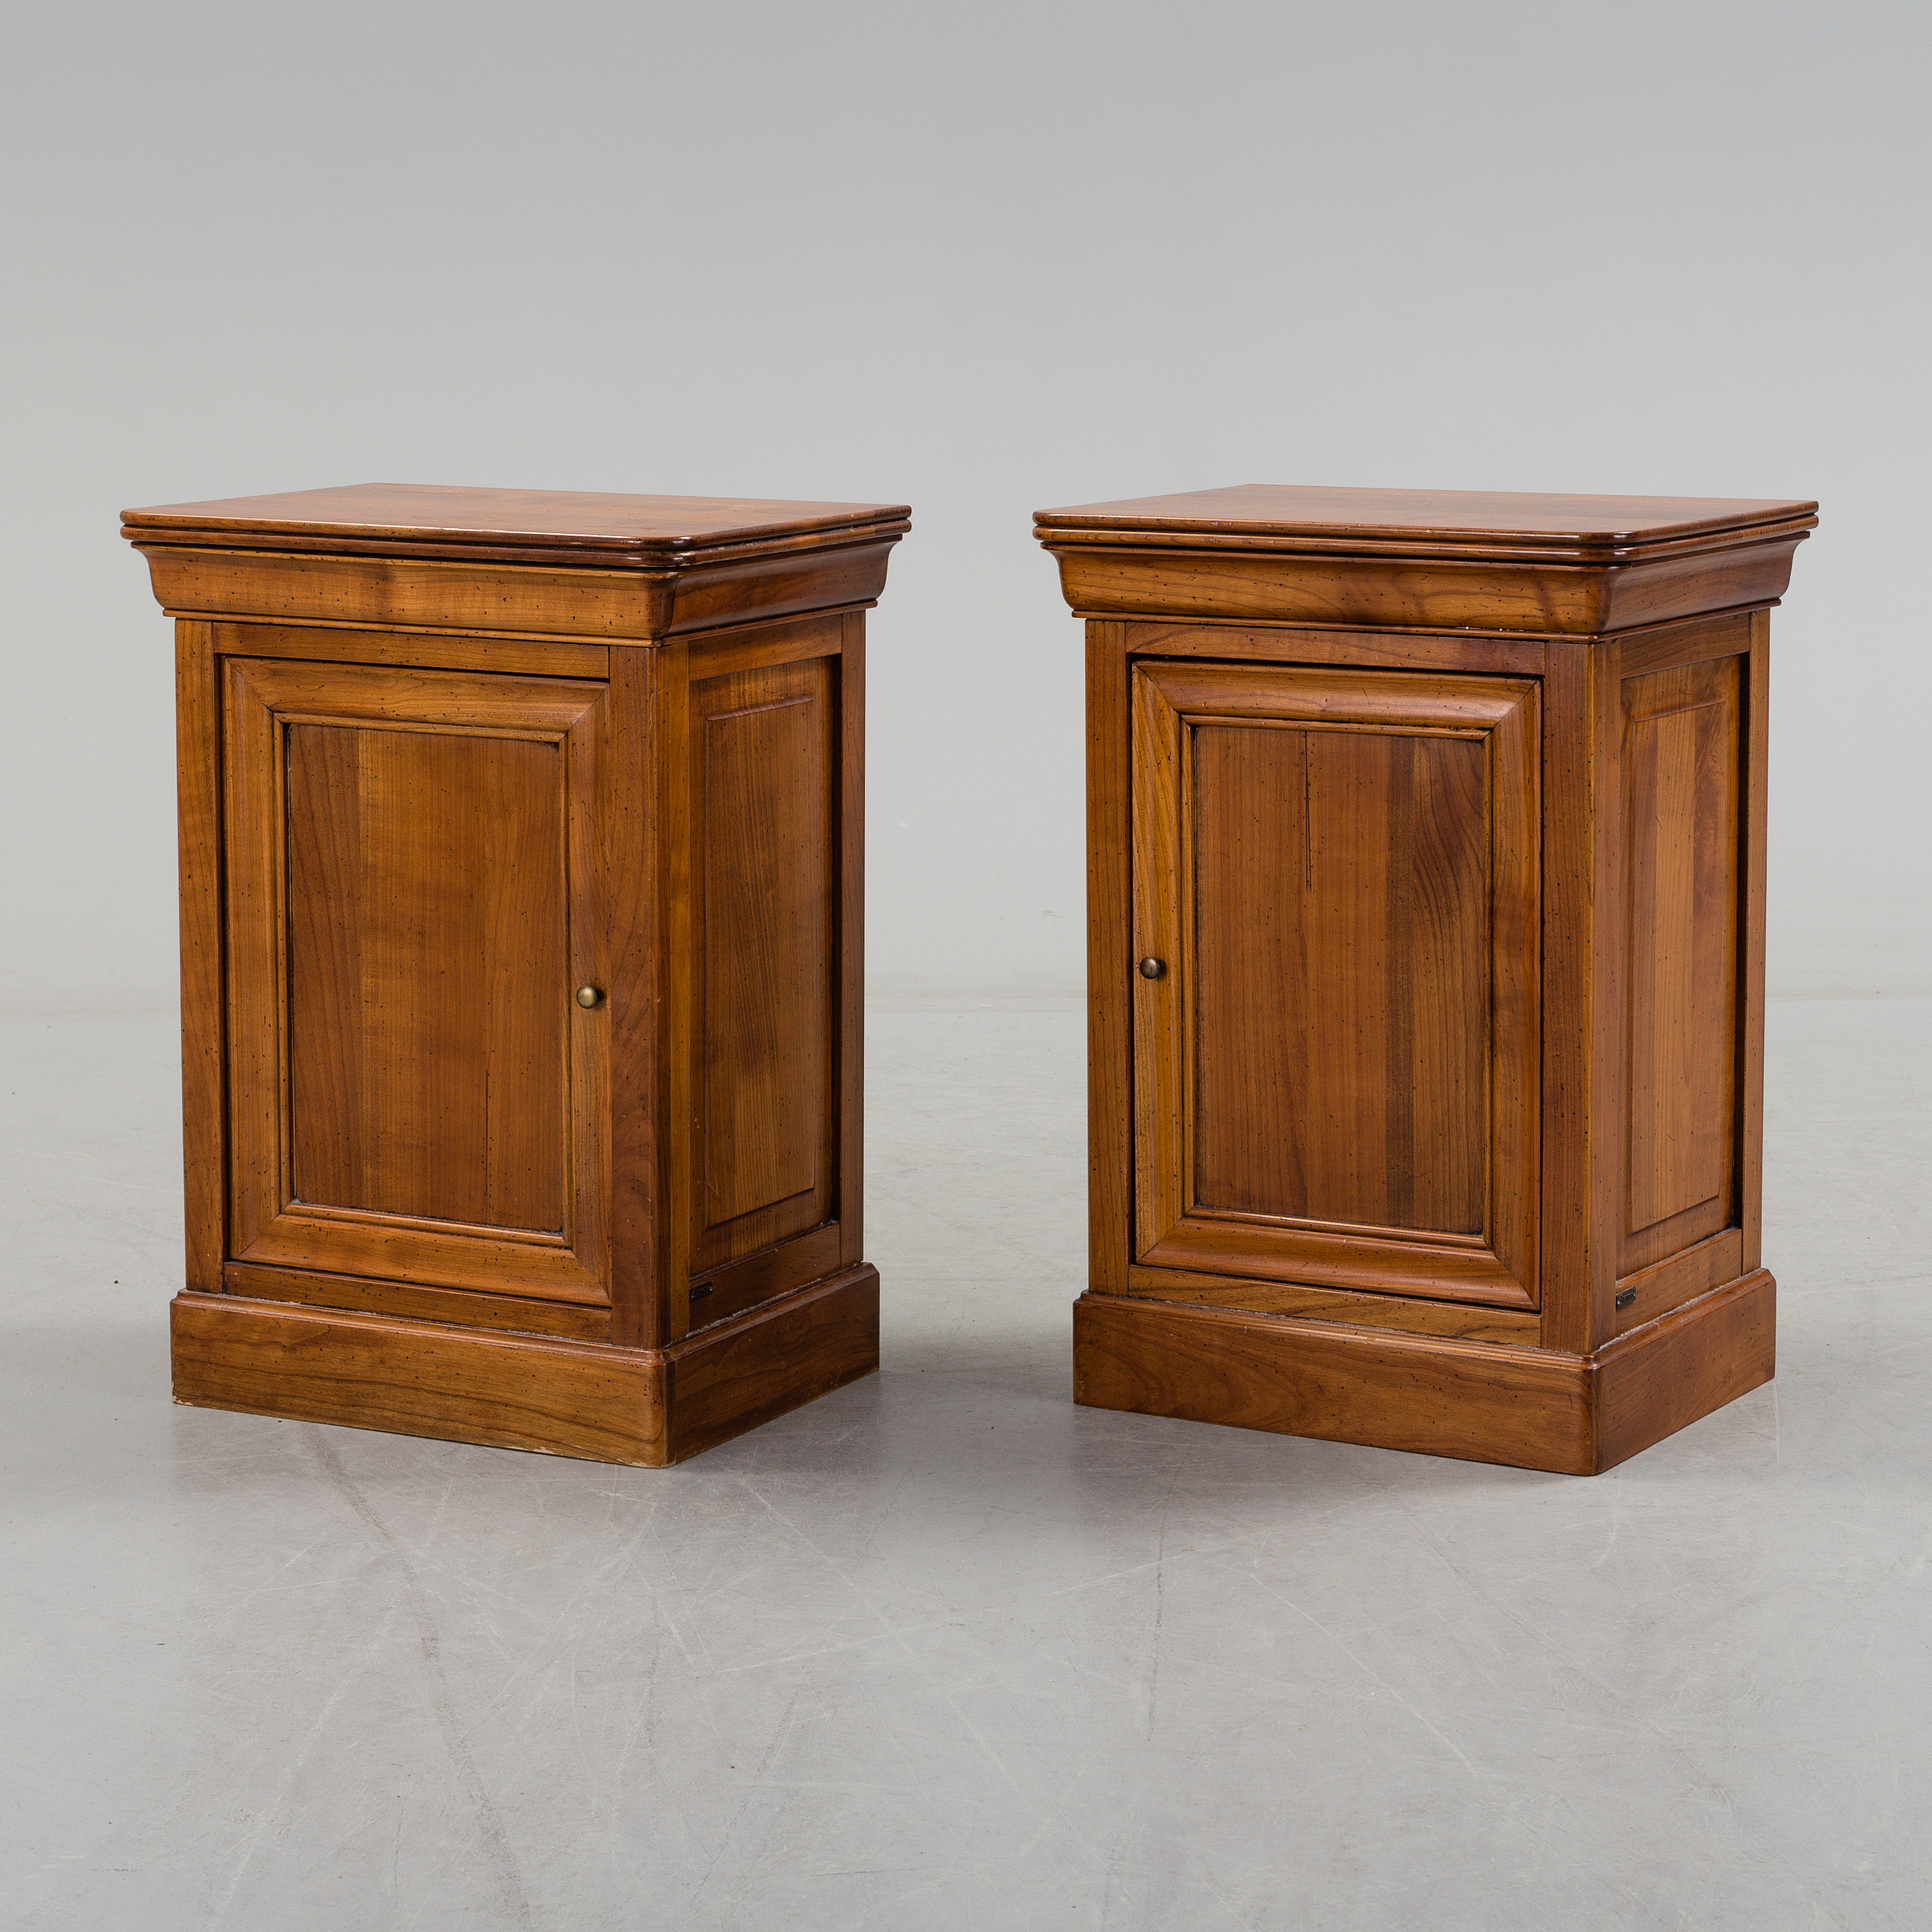 A Pair Of Late 20th Century Bedside Tables By Grange France  # Table Grange France